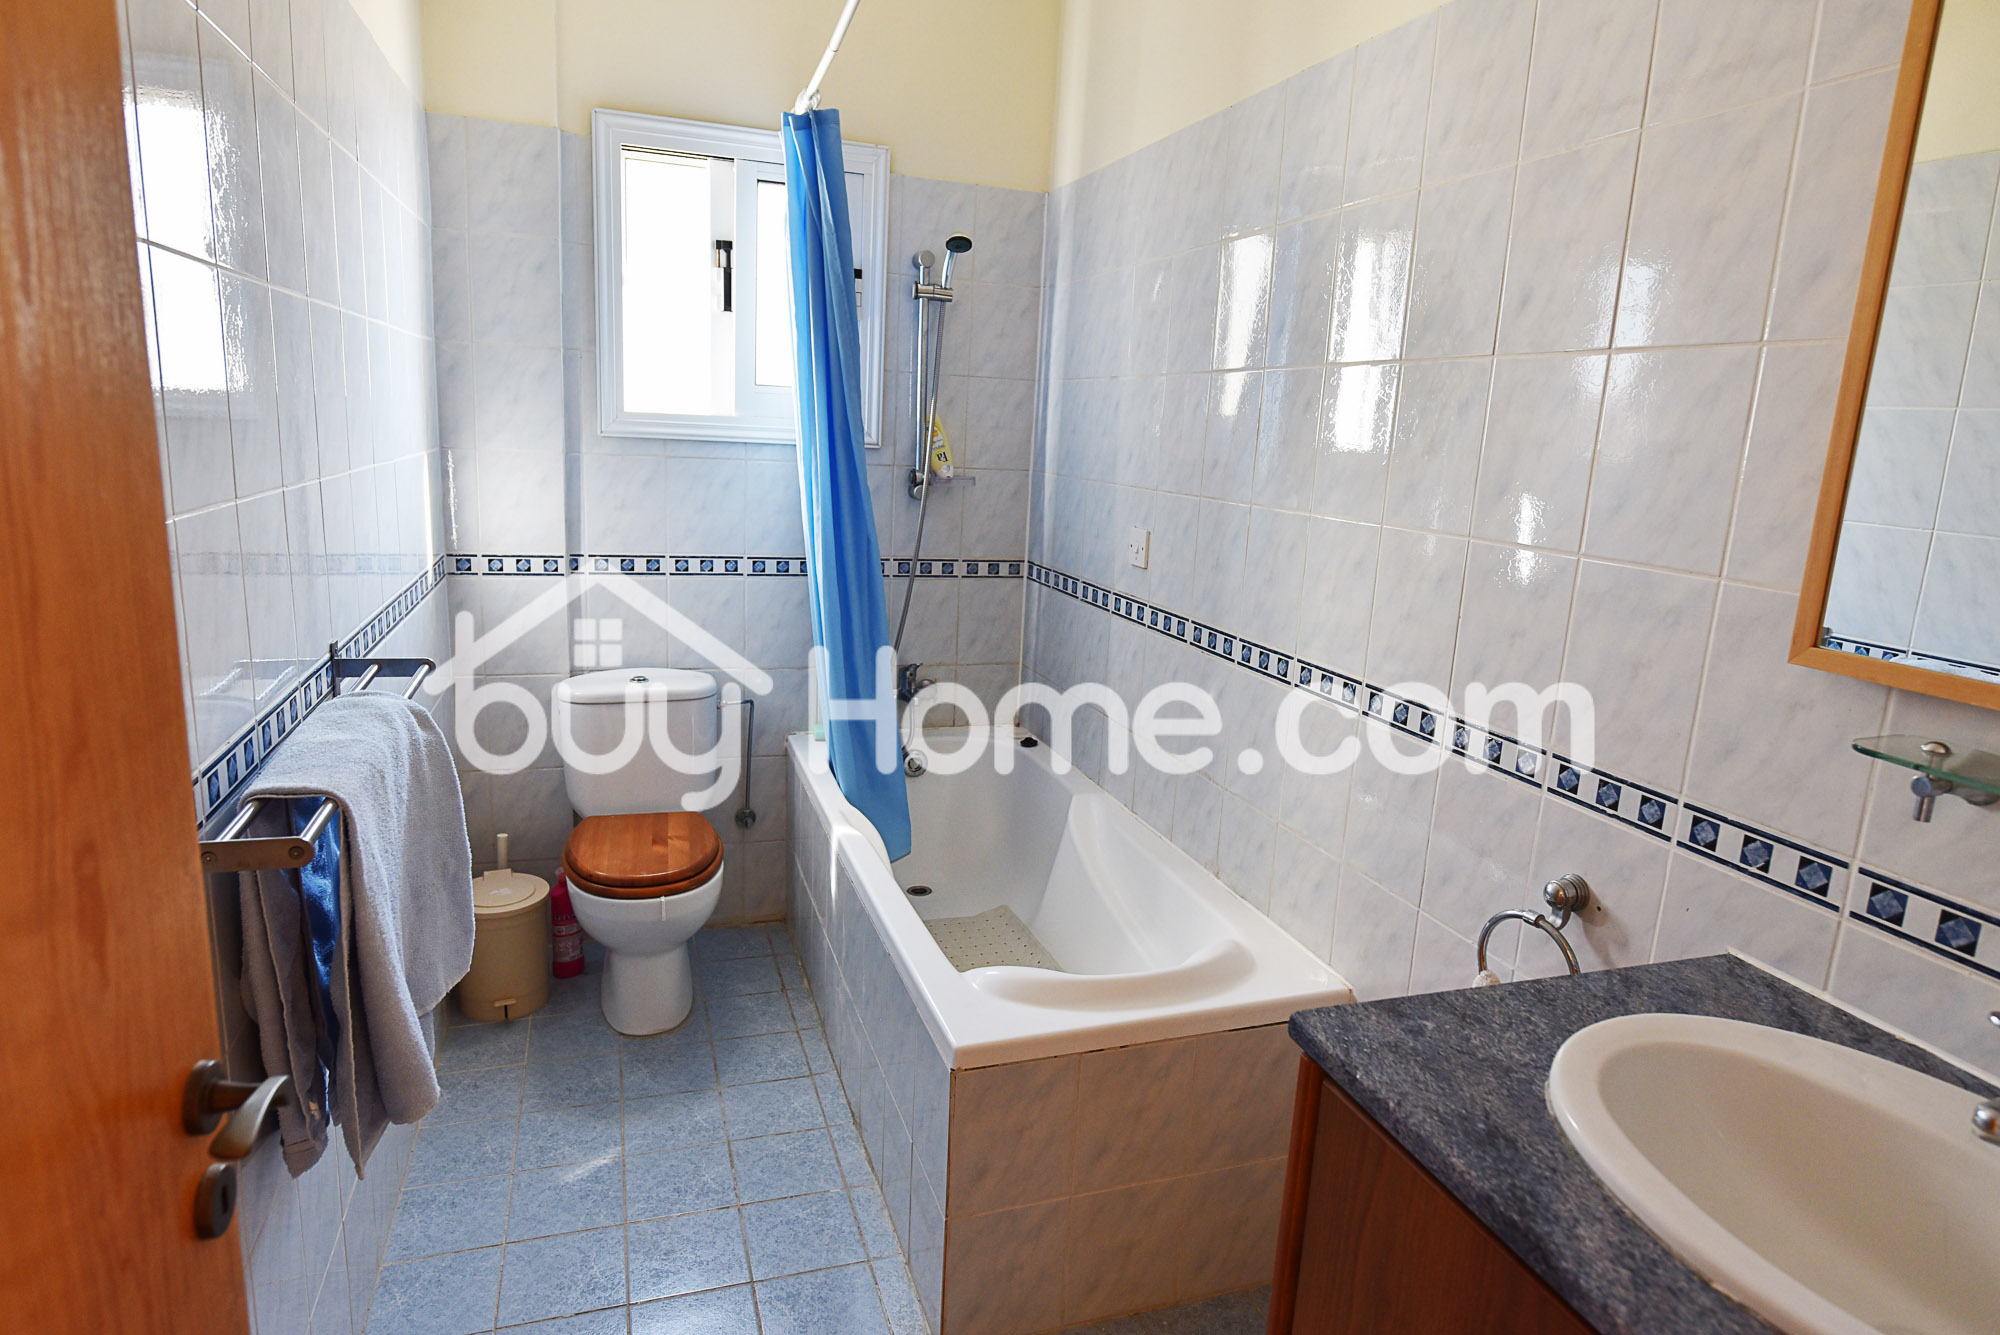 2 Bedroom House | BuyHome